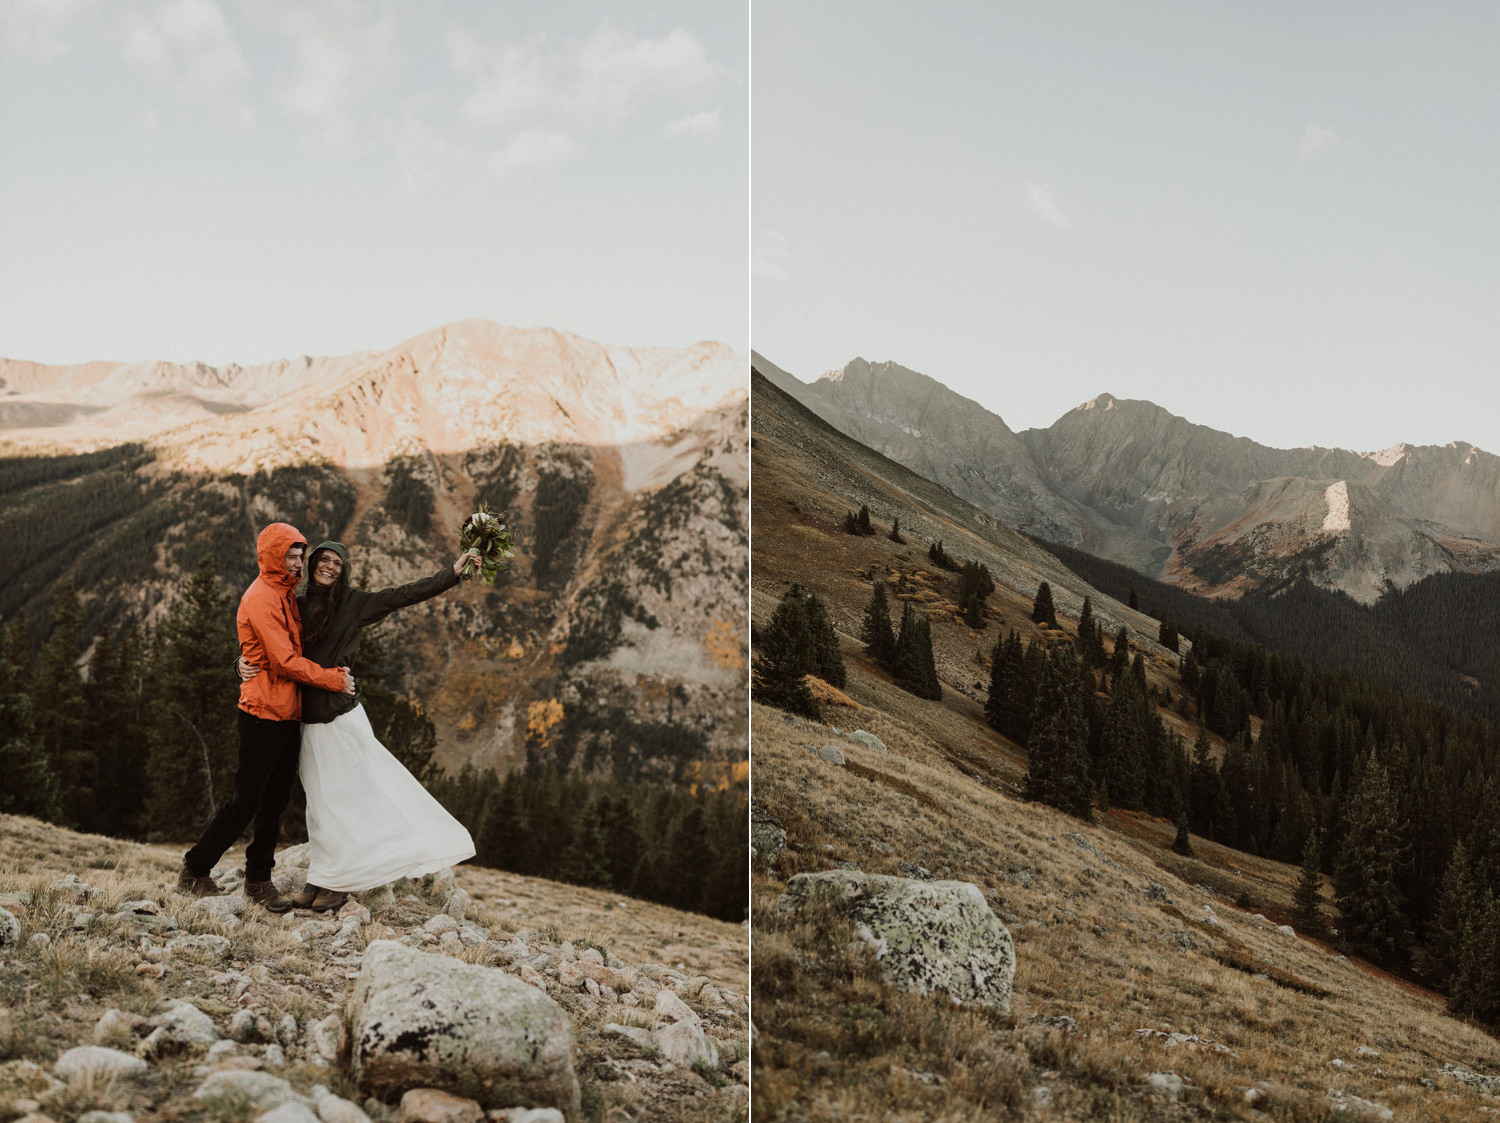 fourteener-adventure-wedding-photographer-8.jpg